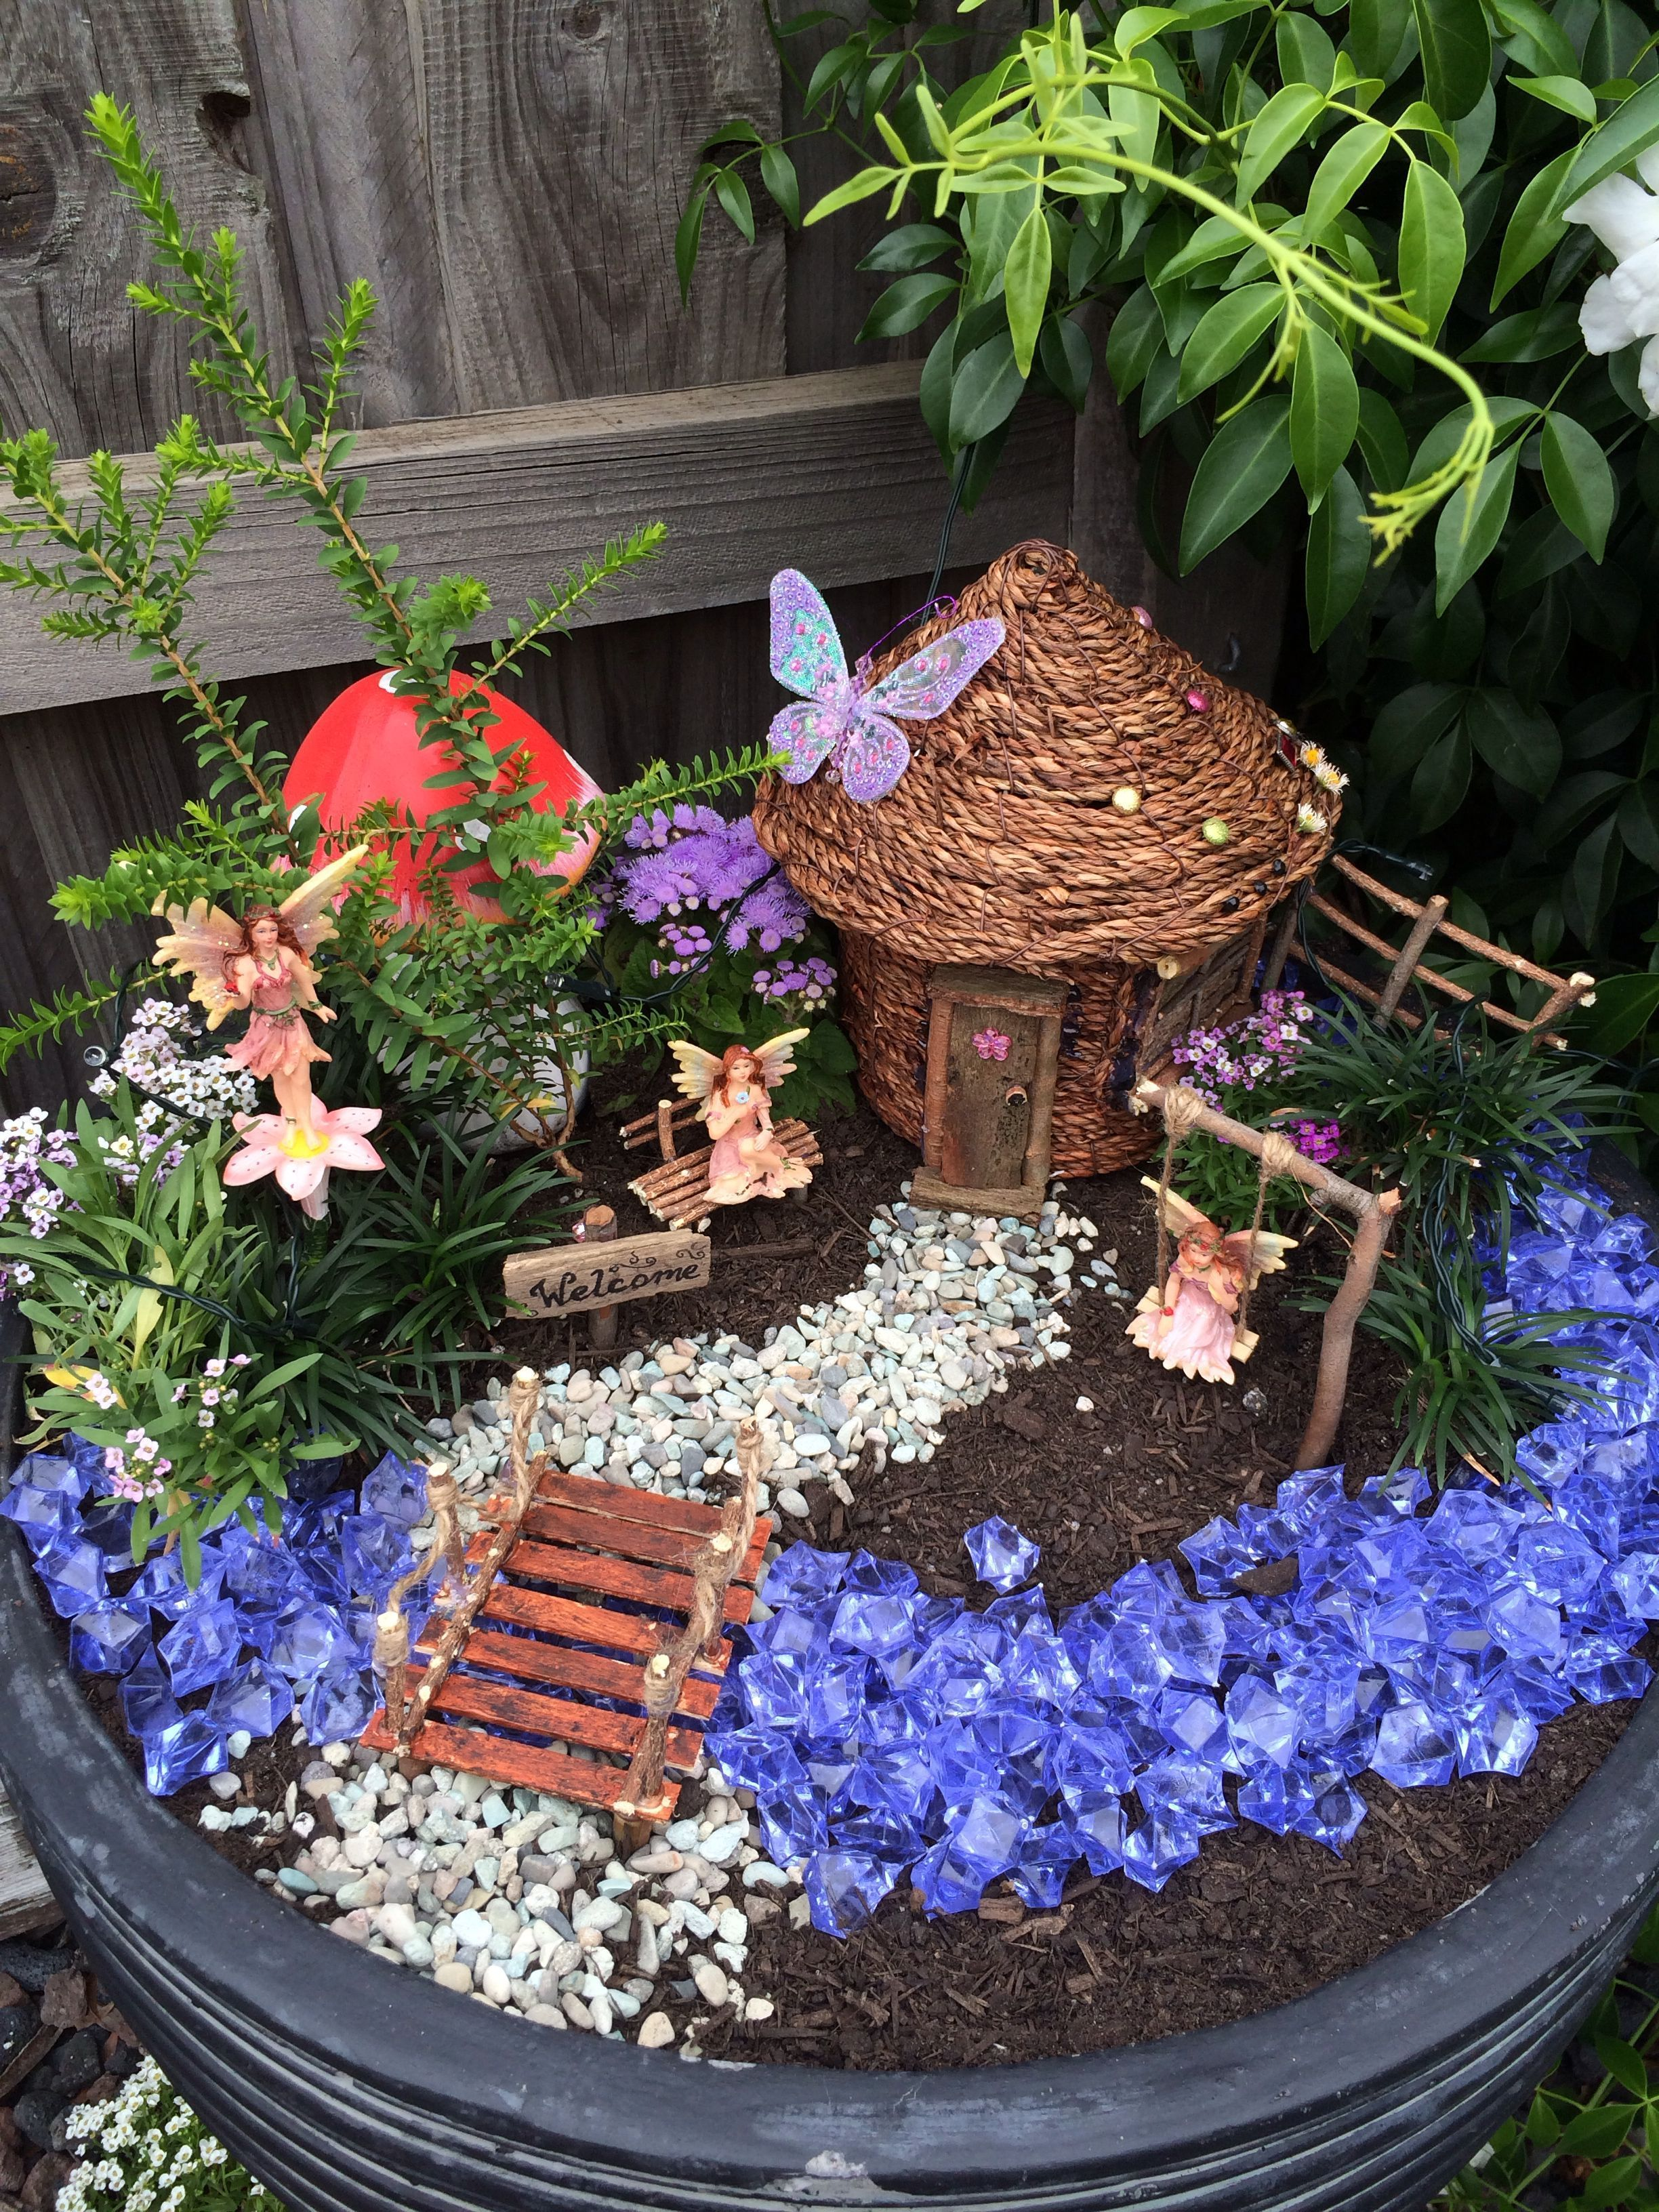 52 Lovely And Magical Miniature Fairy Garden Ideas With Images